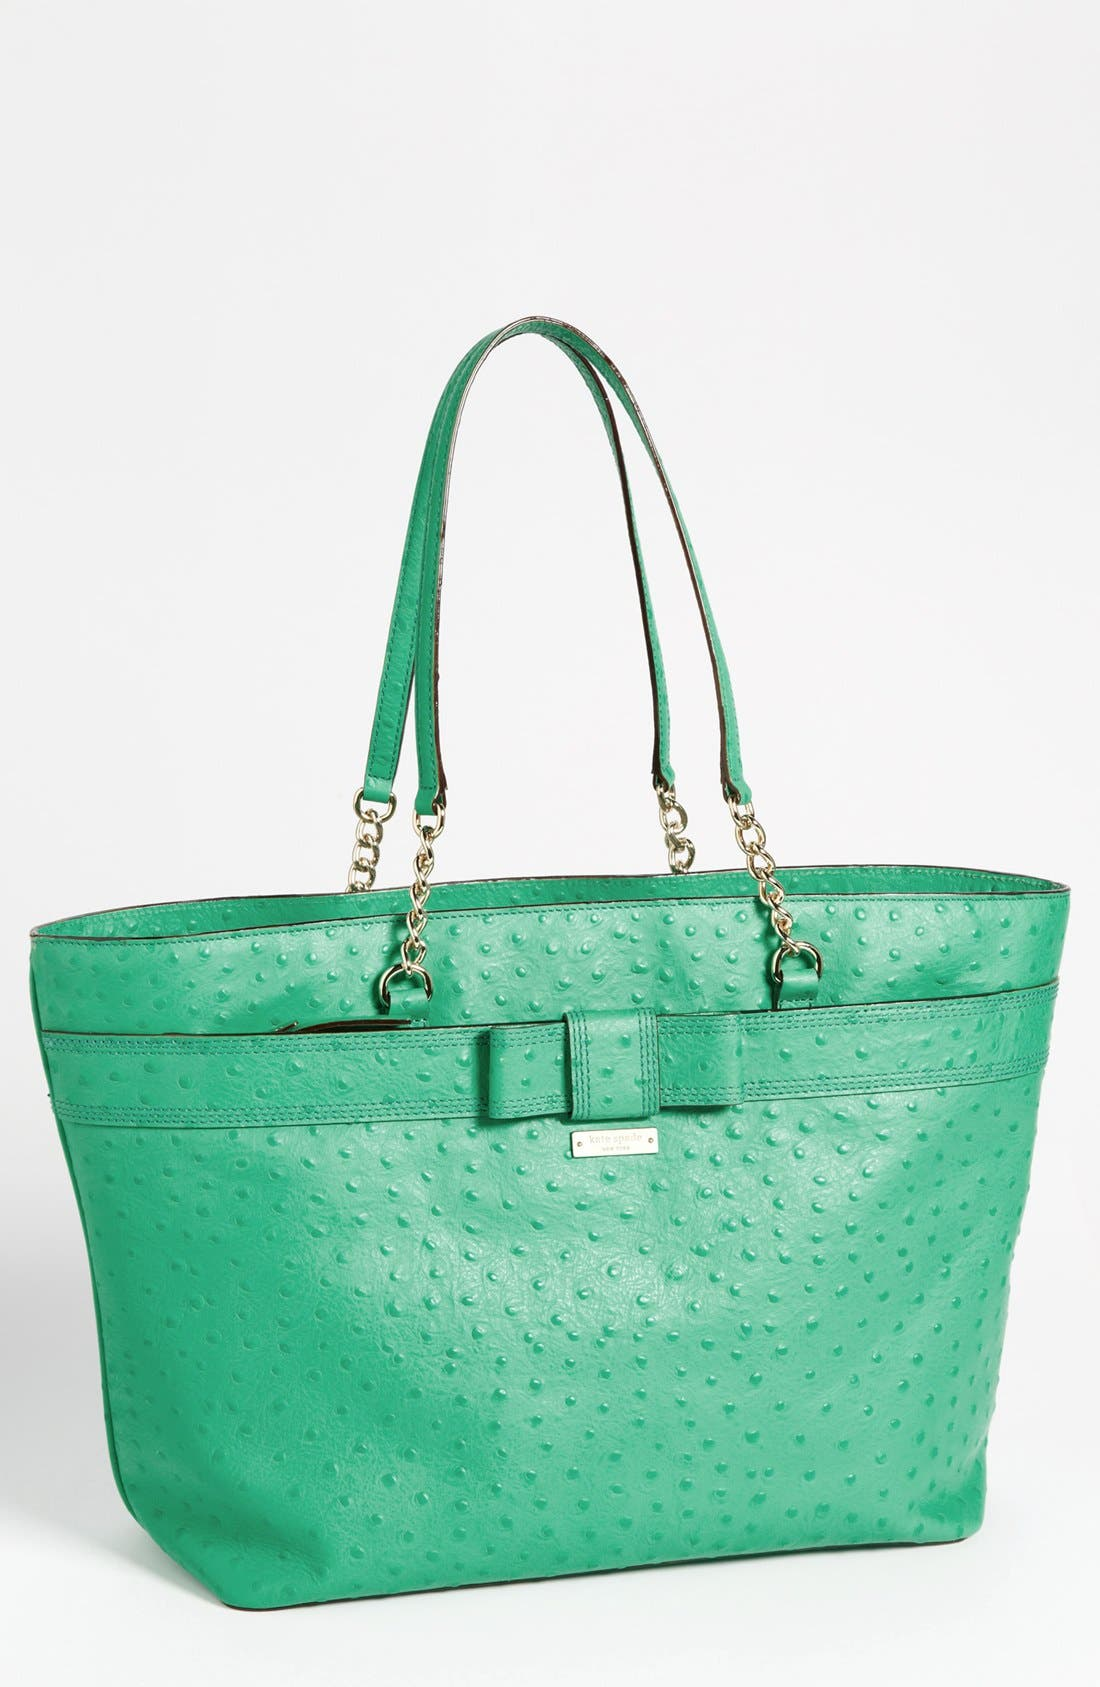 Alternate Image 1 Selected - kate spade new york 'rose avenue harmony - medium' leather tote